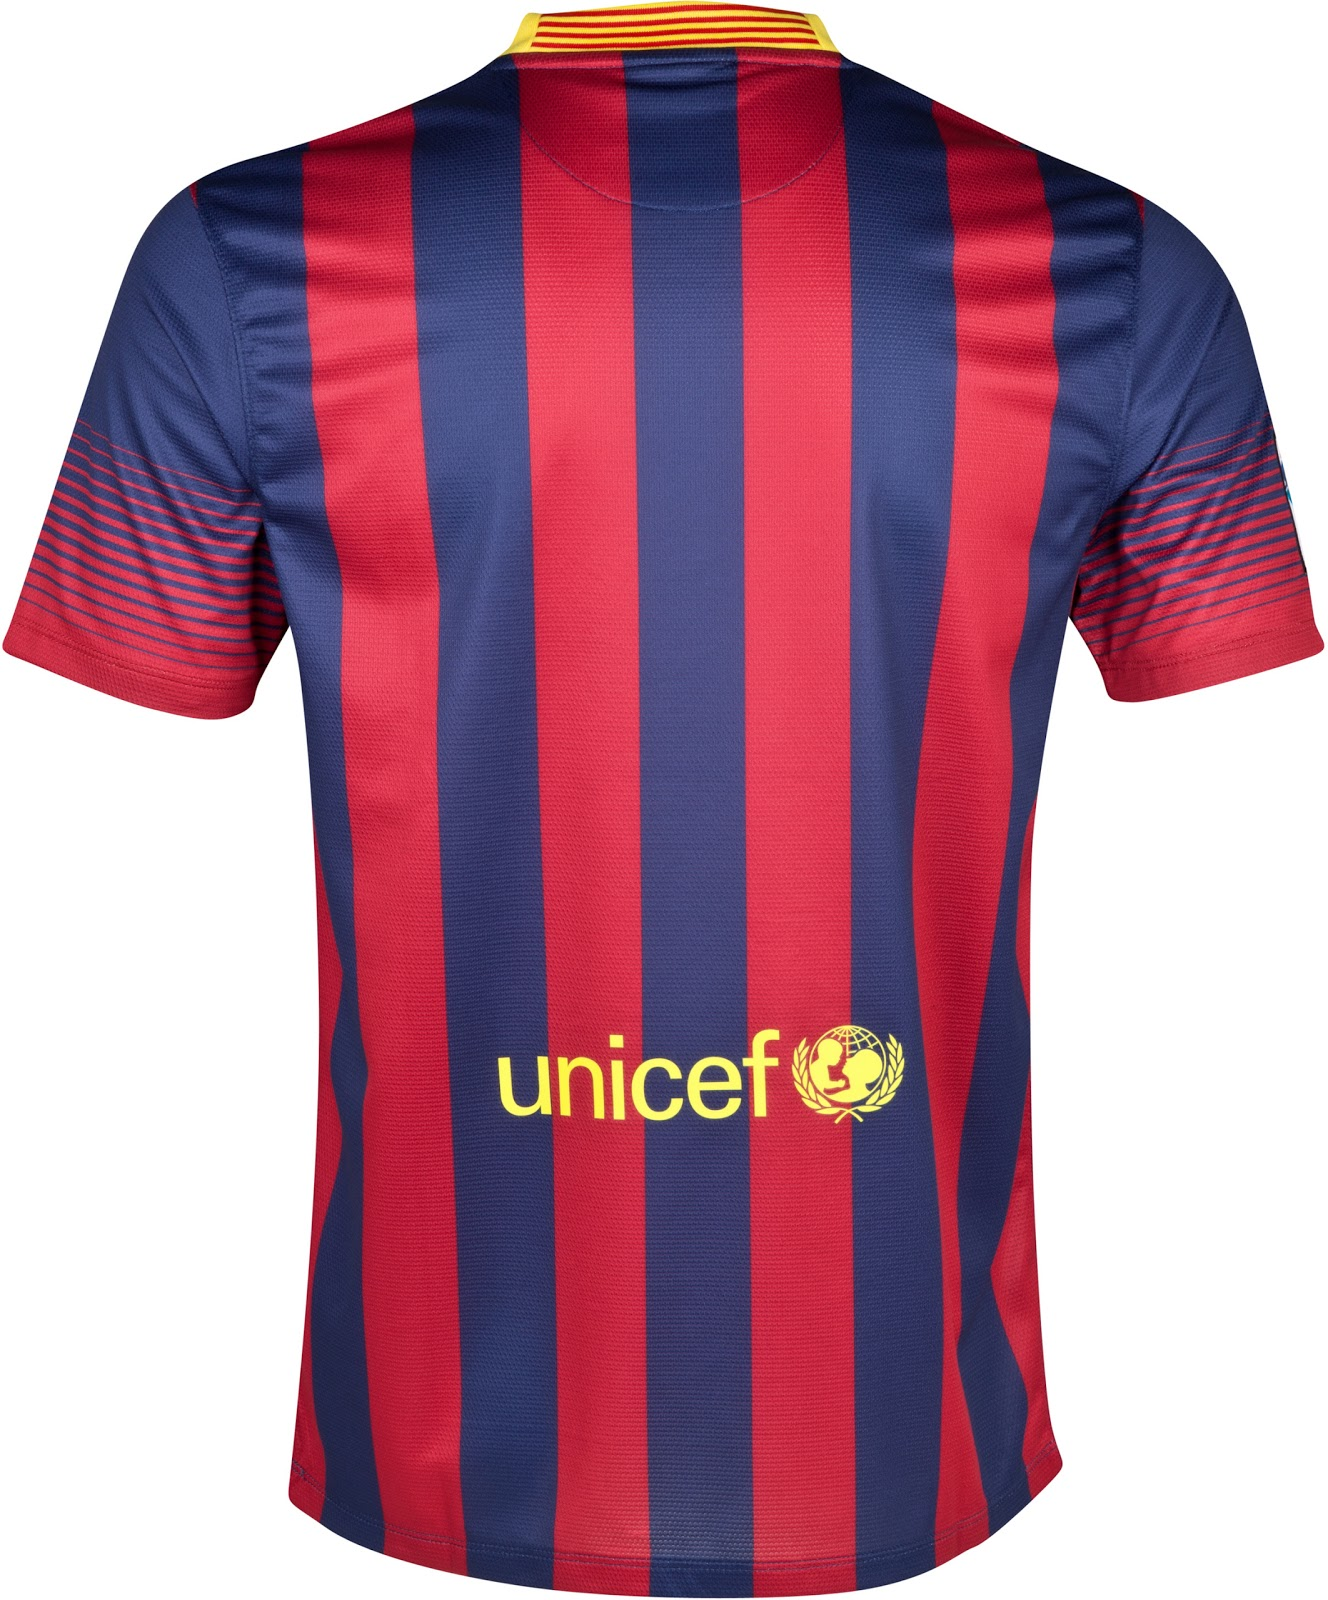 Fc barcelona 13 14 home away kits released third kit info footy